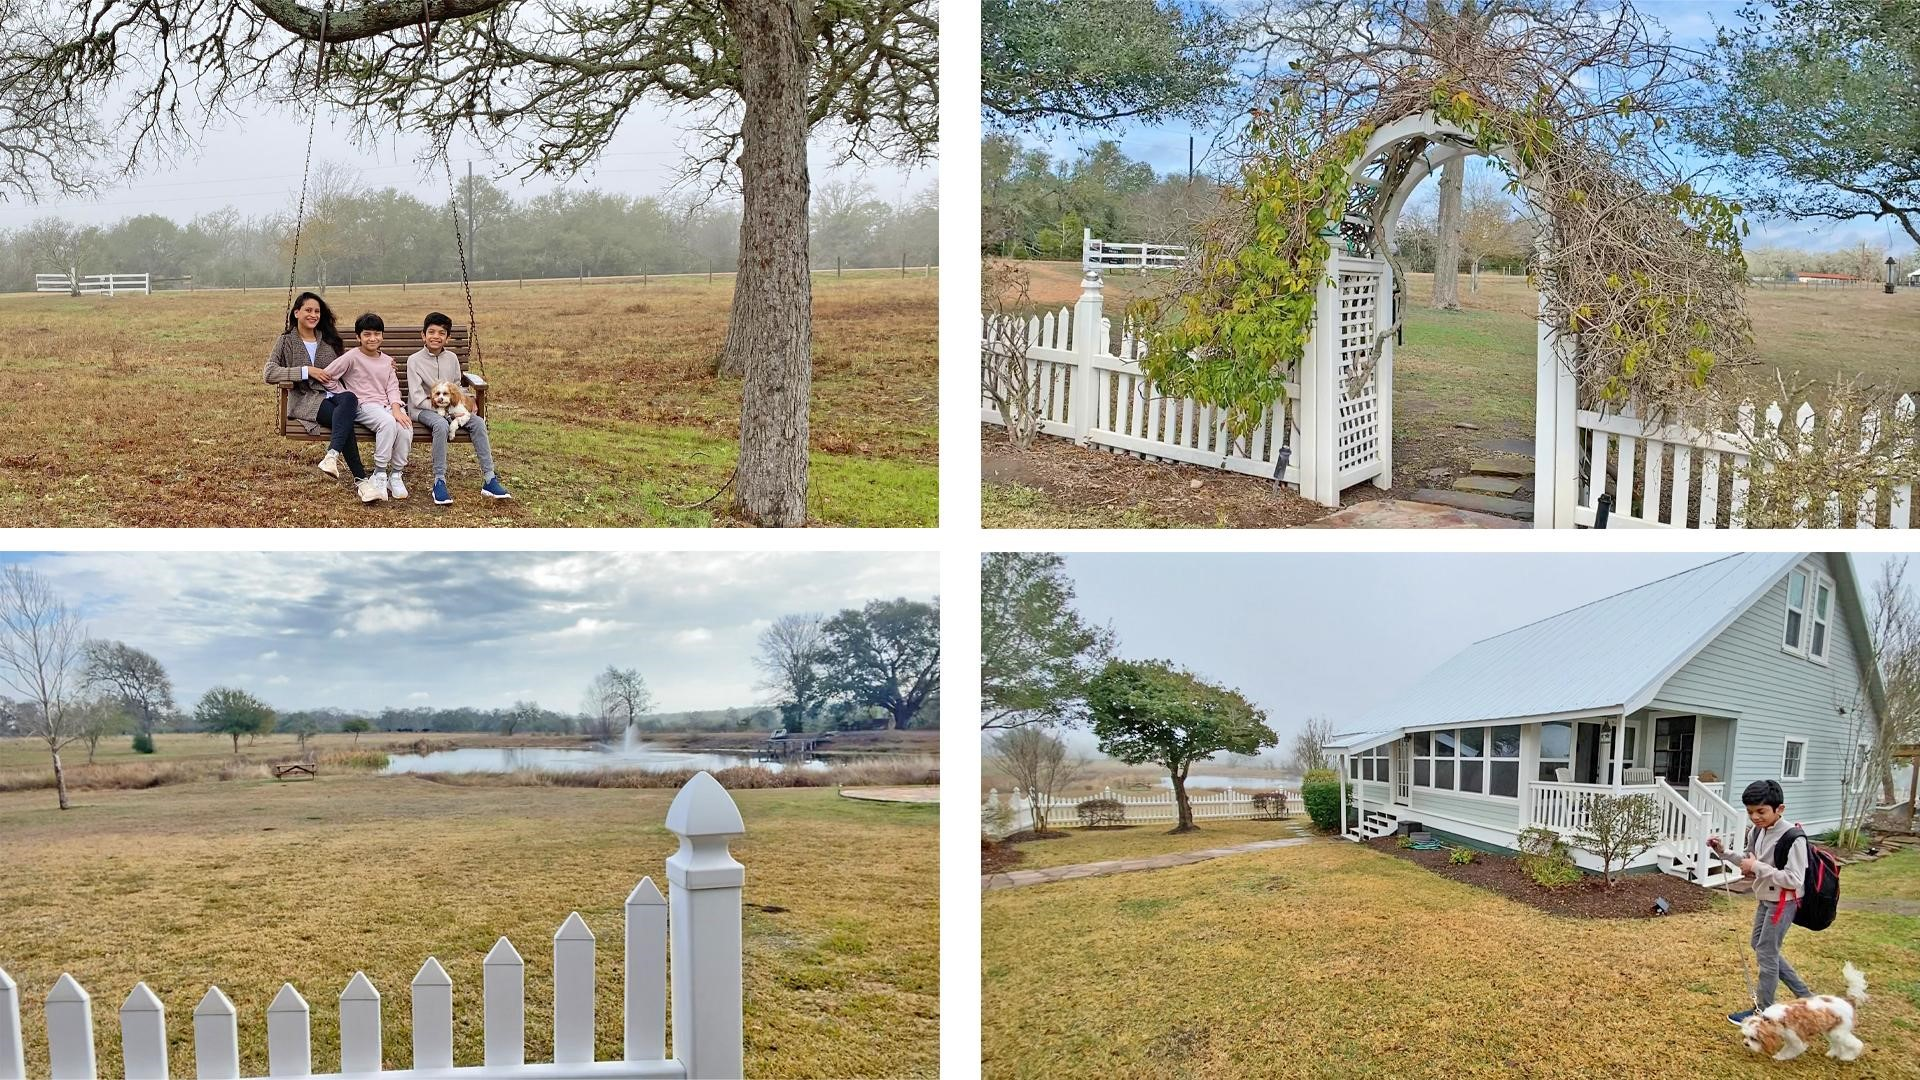 Amitha, her sons, and dog touring the grounds of their rented farmhouse Airbnb